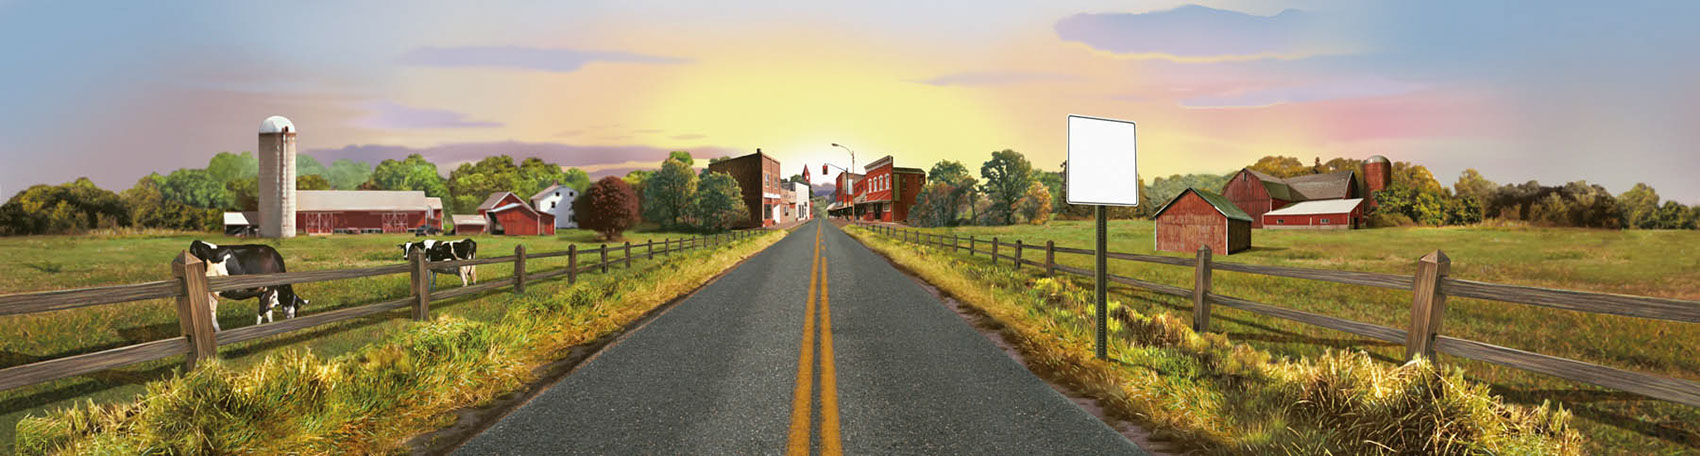 illustration-Landscapes_Kinney Farmland-Impressa